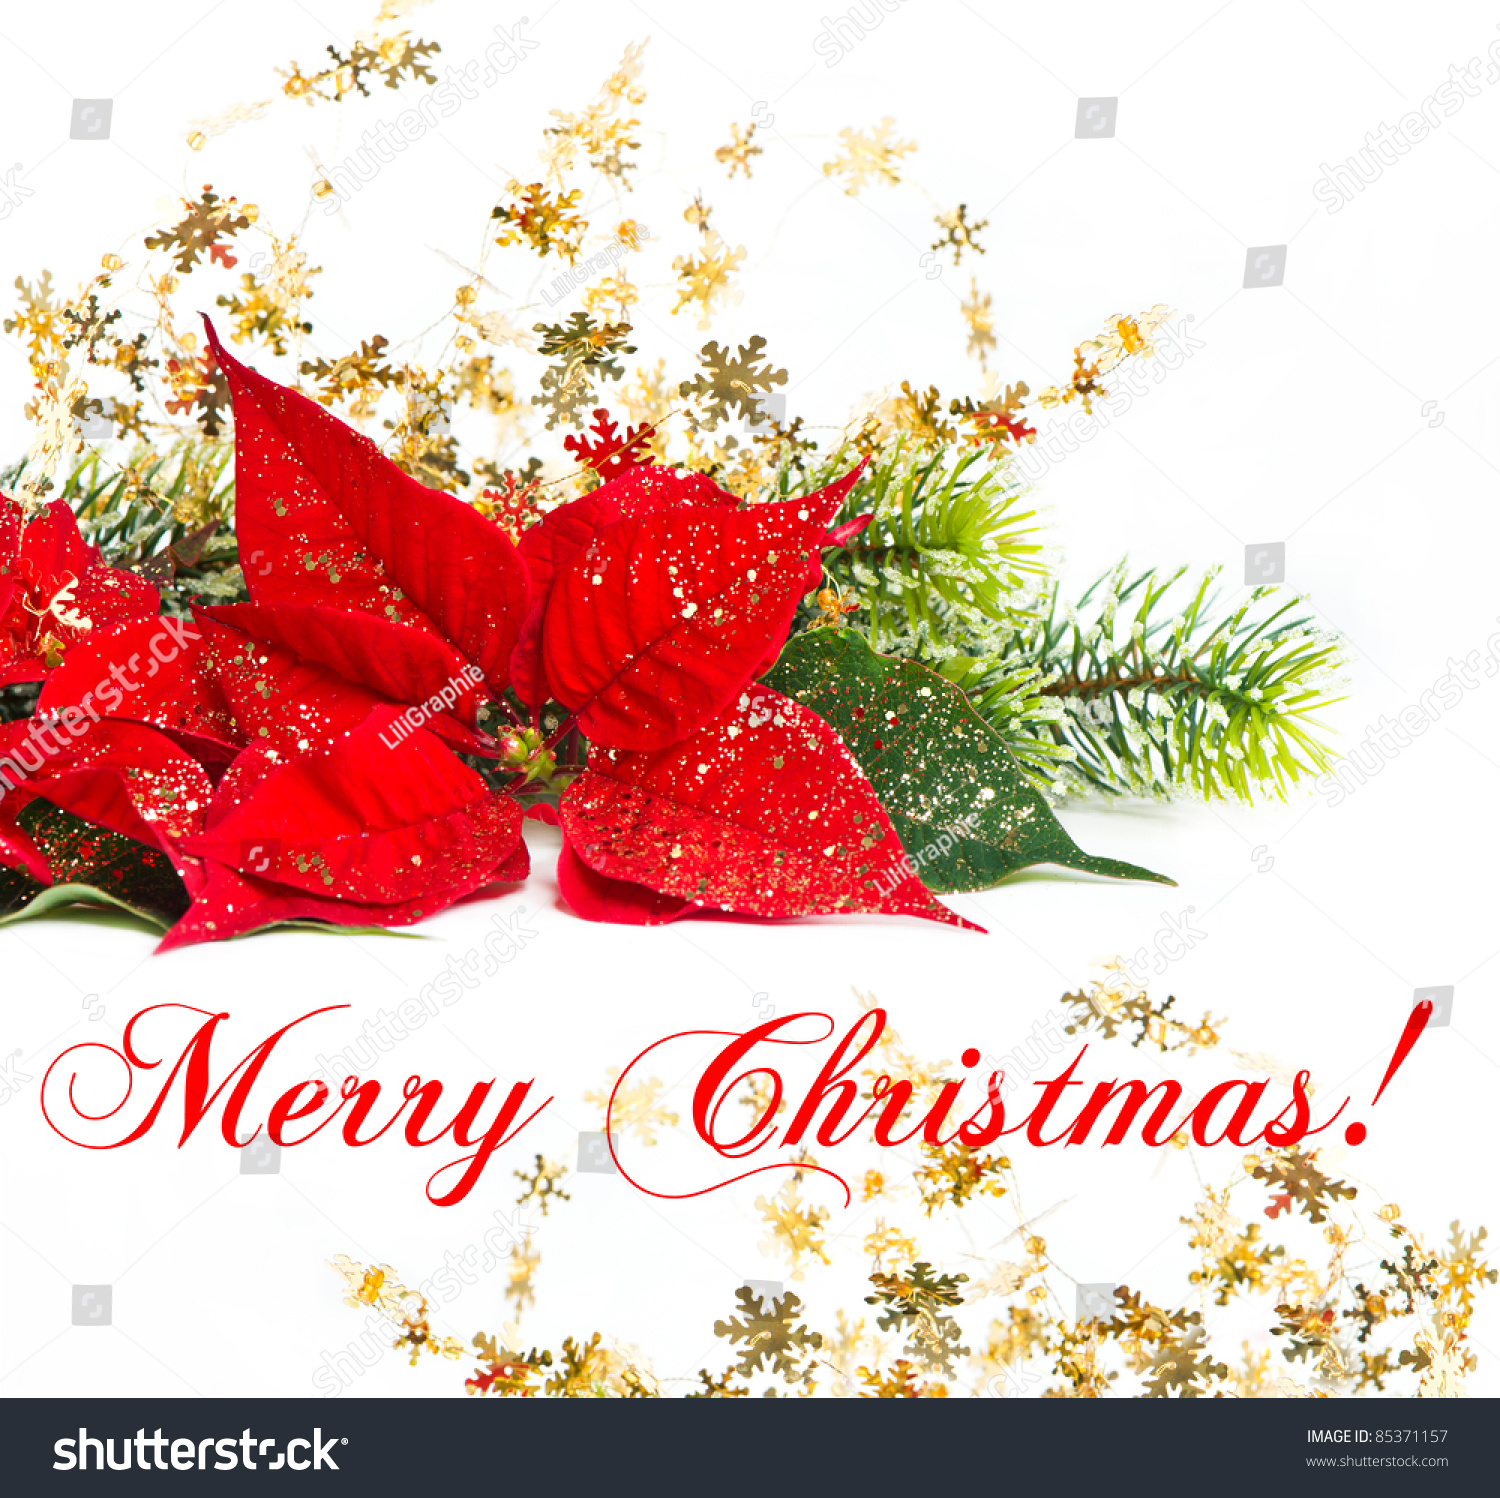 red poinsettia christmas flower with golden decoration merry christmas card concept - Christmas Poinsettia